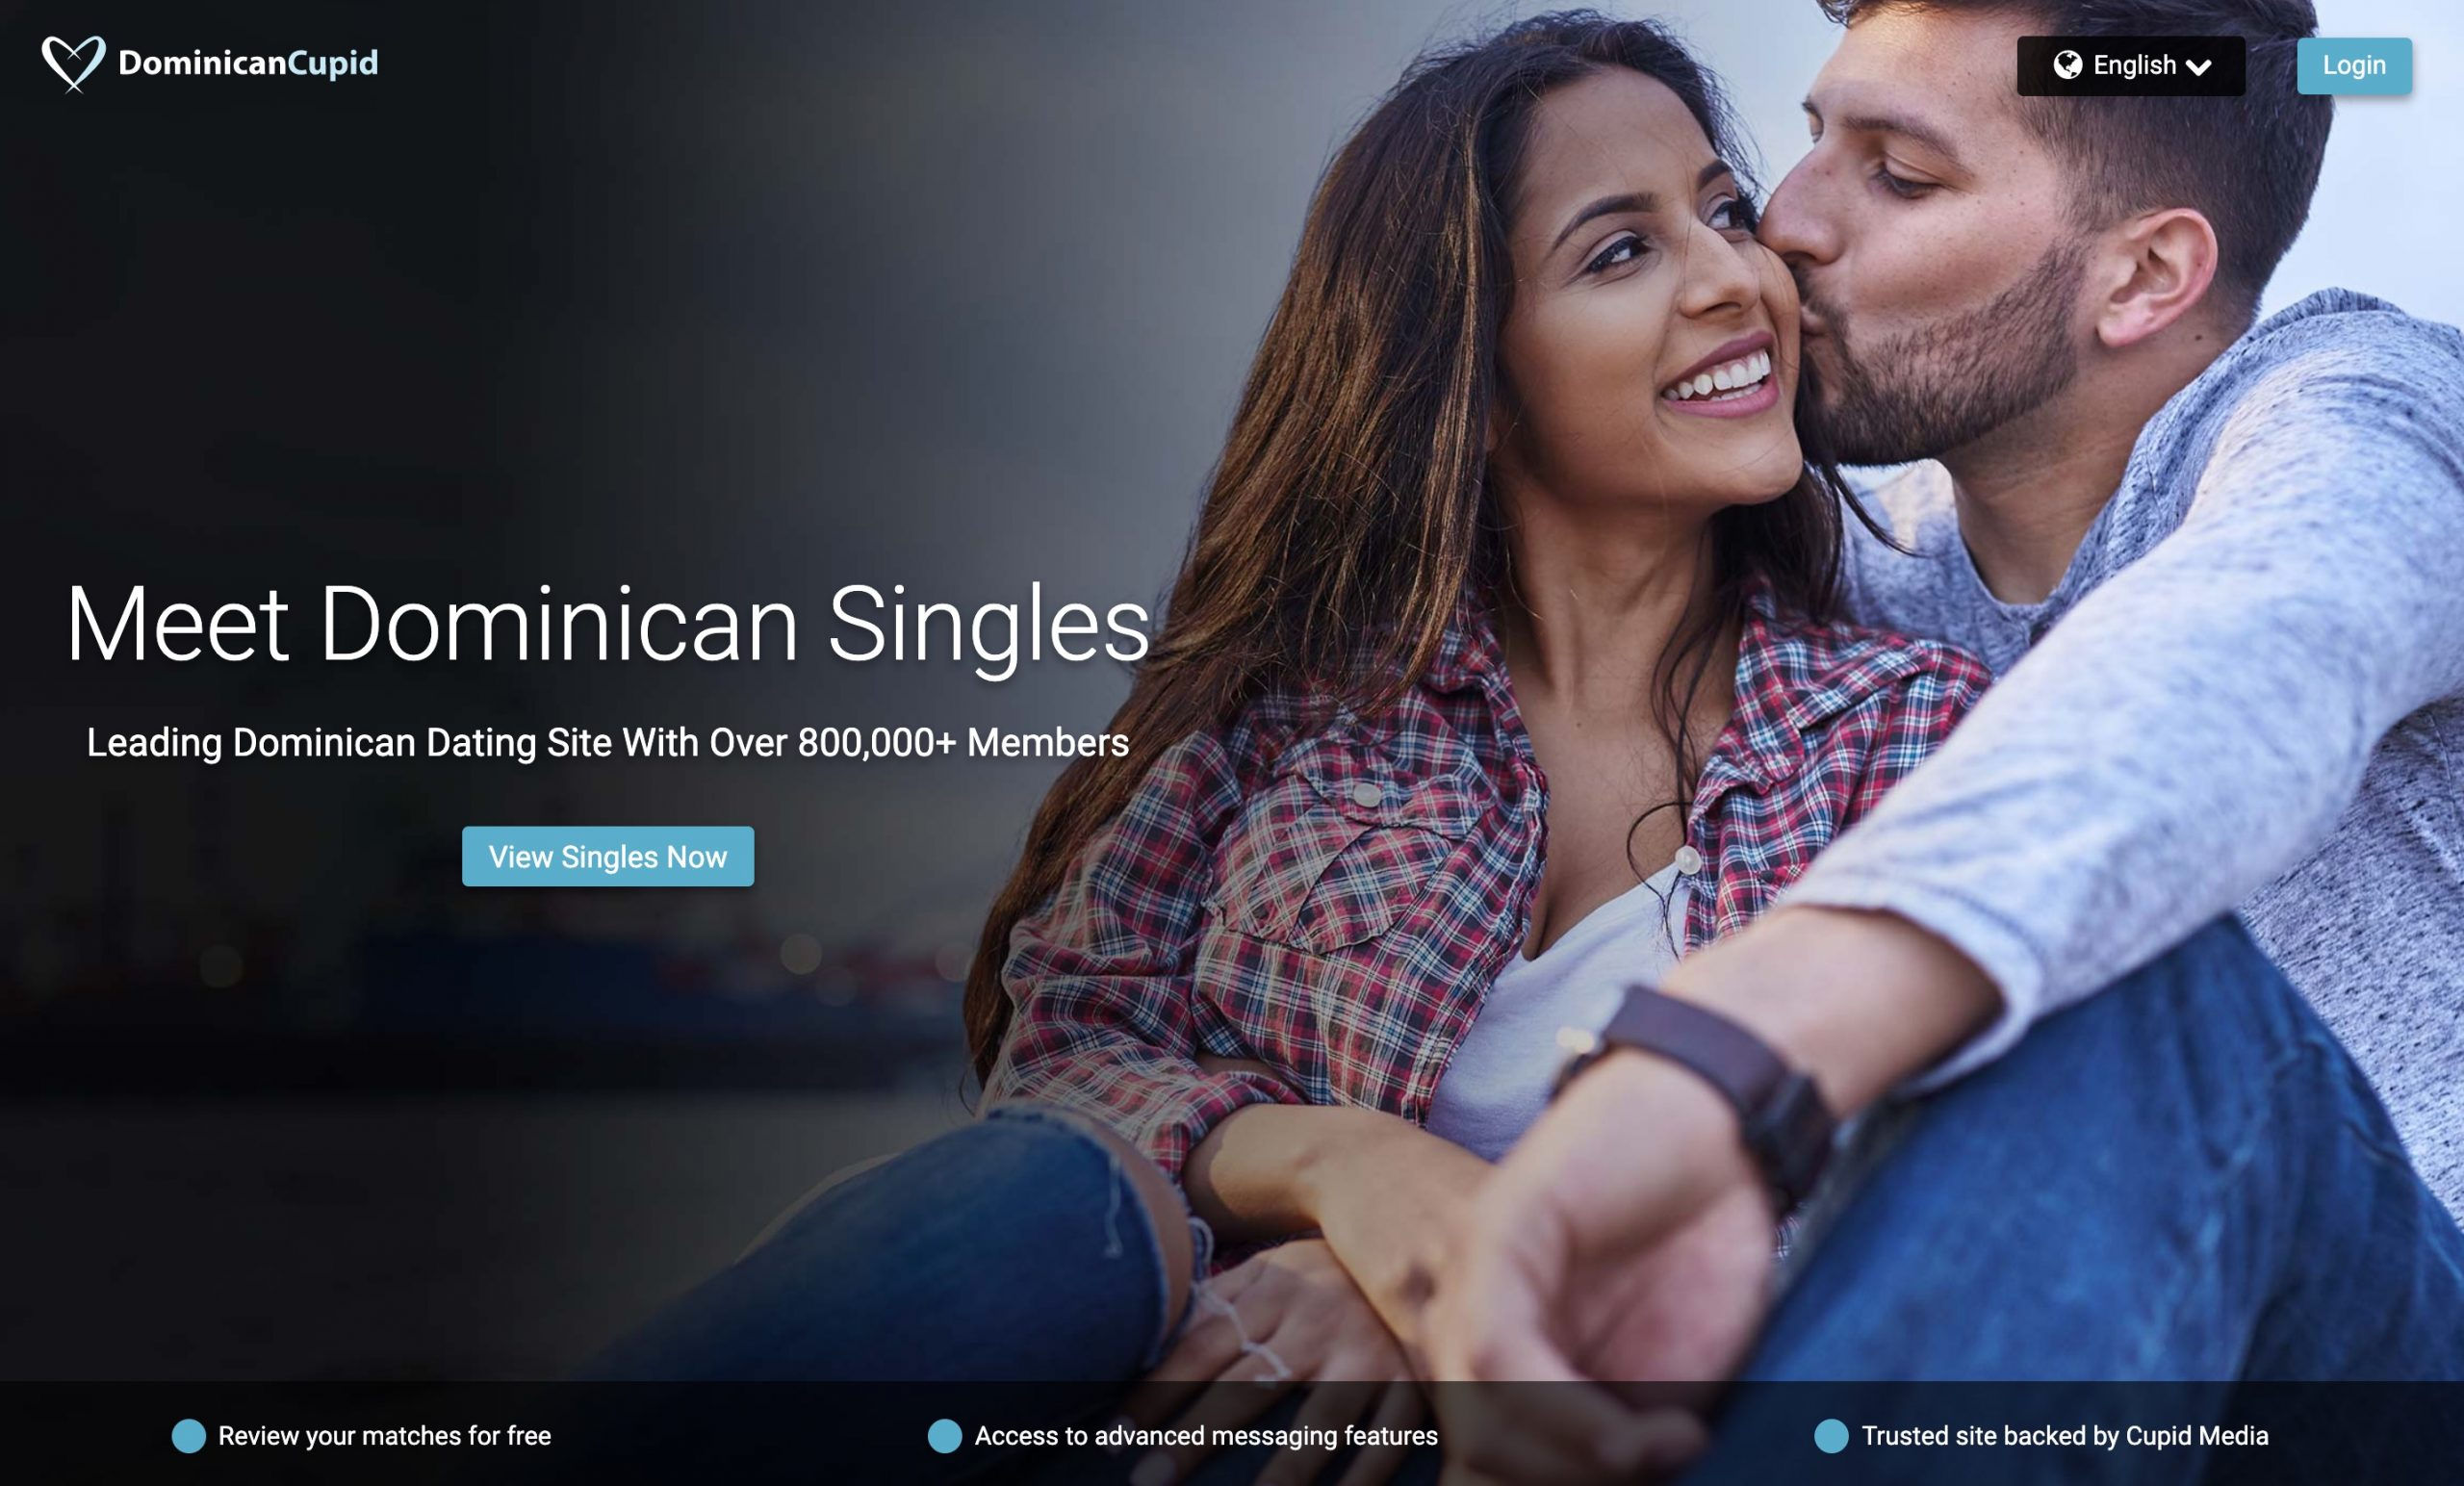 DominicanCupid main page